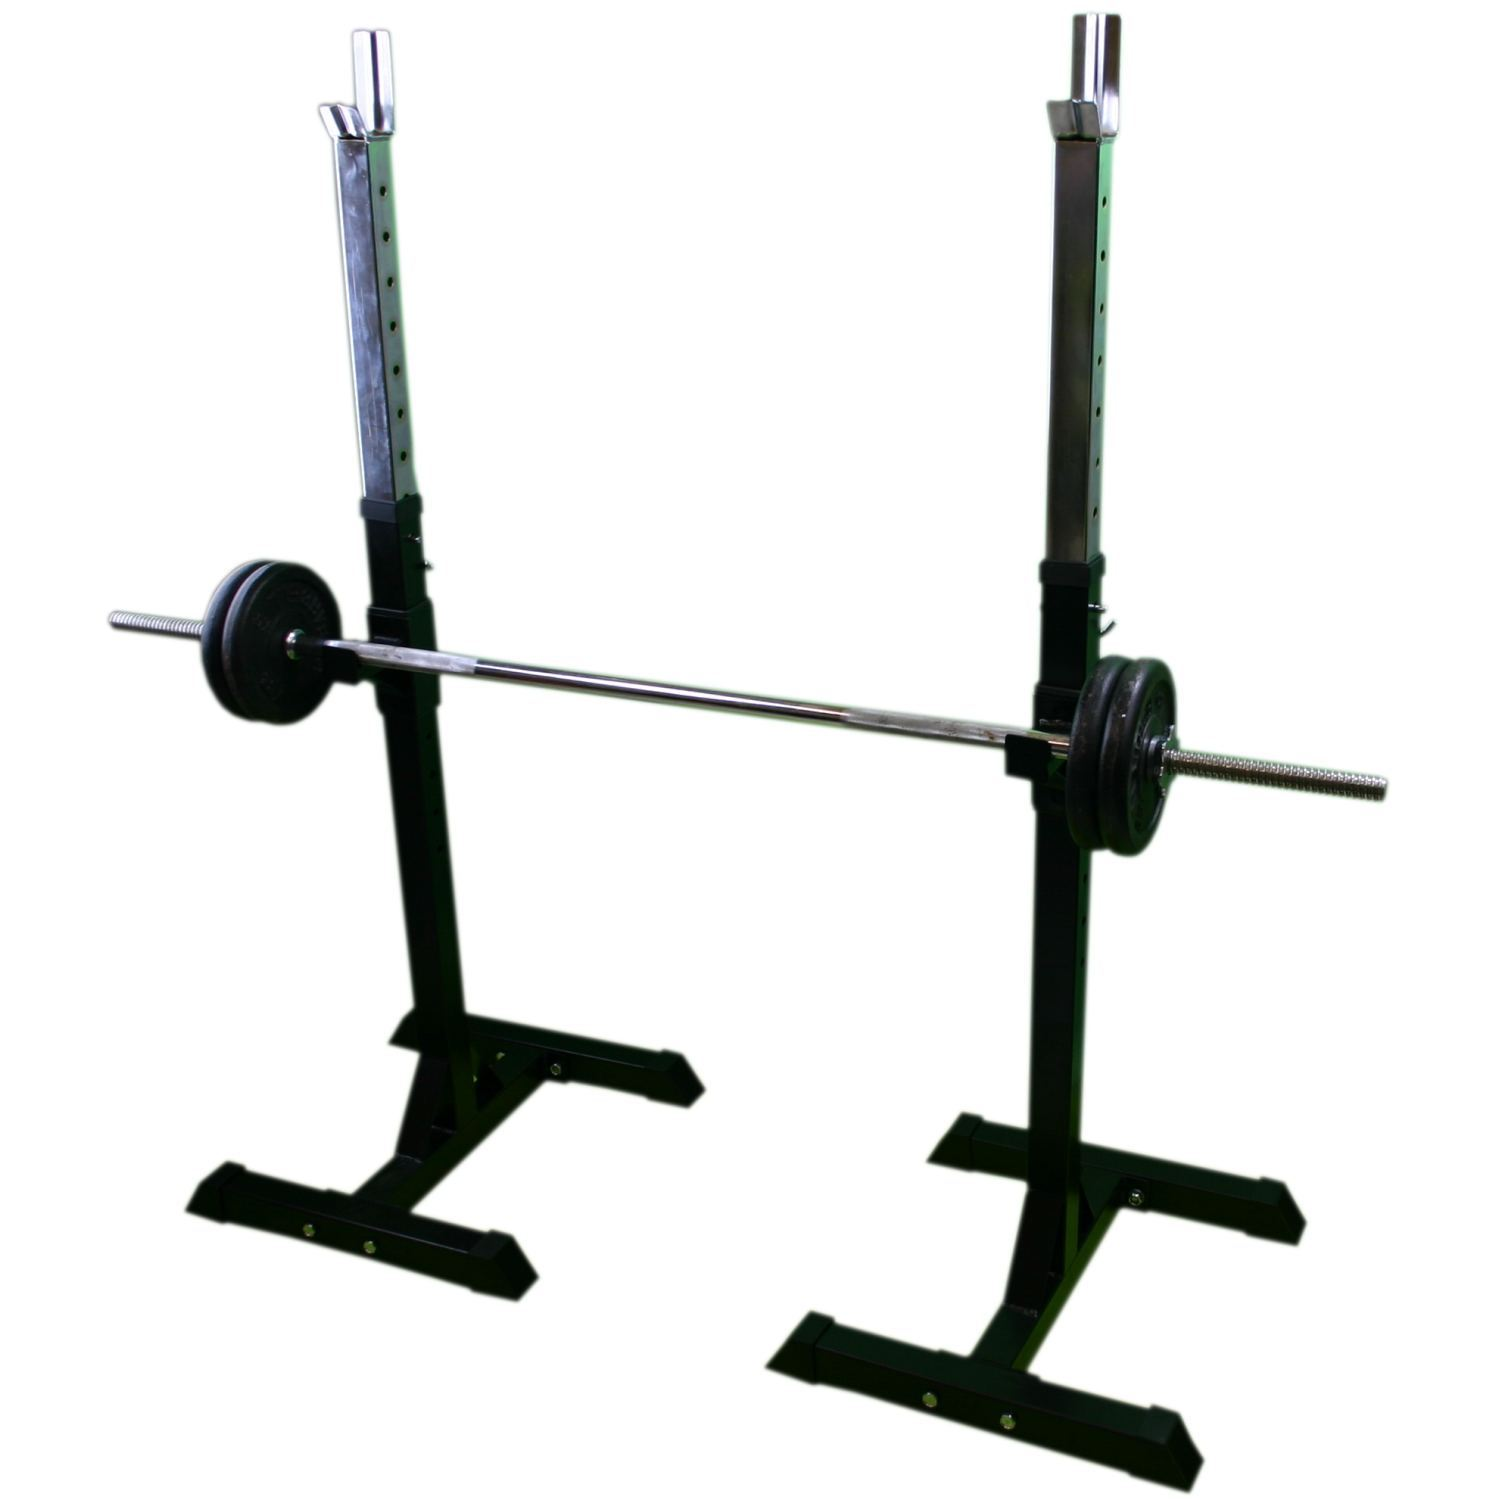 Bodyrip Adjustable Barbell Stand Squat Rack Weight Fitness Gym Training Ebay